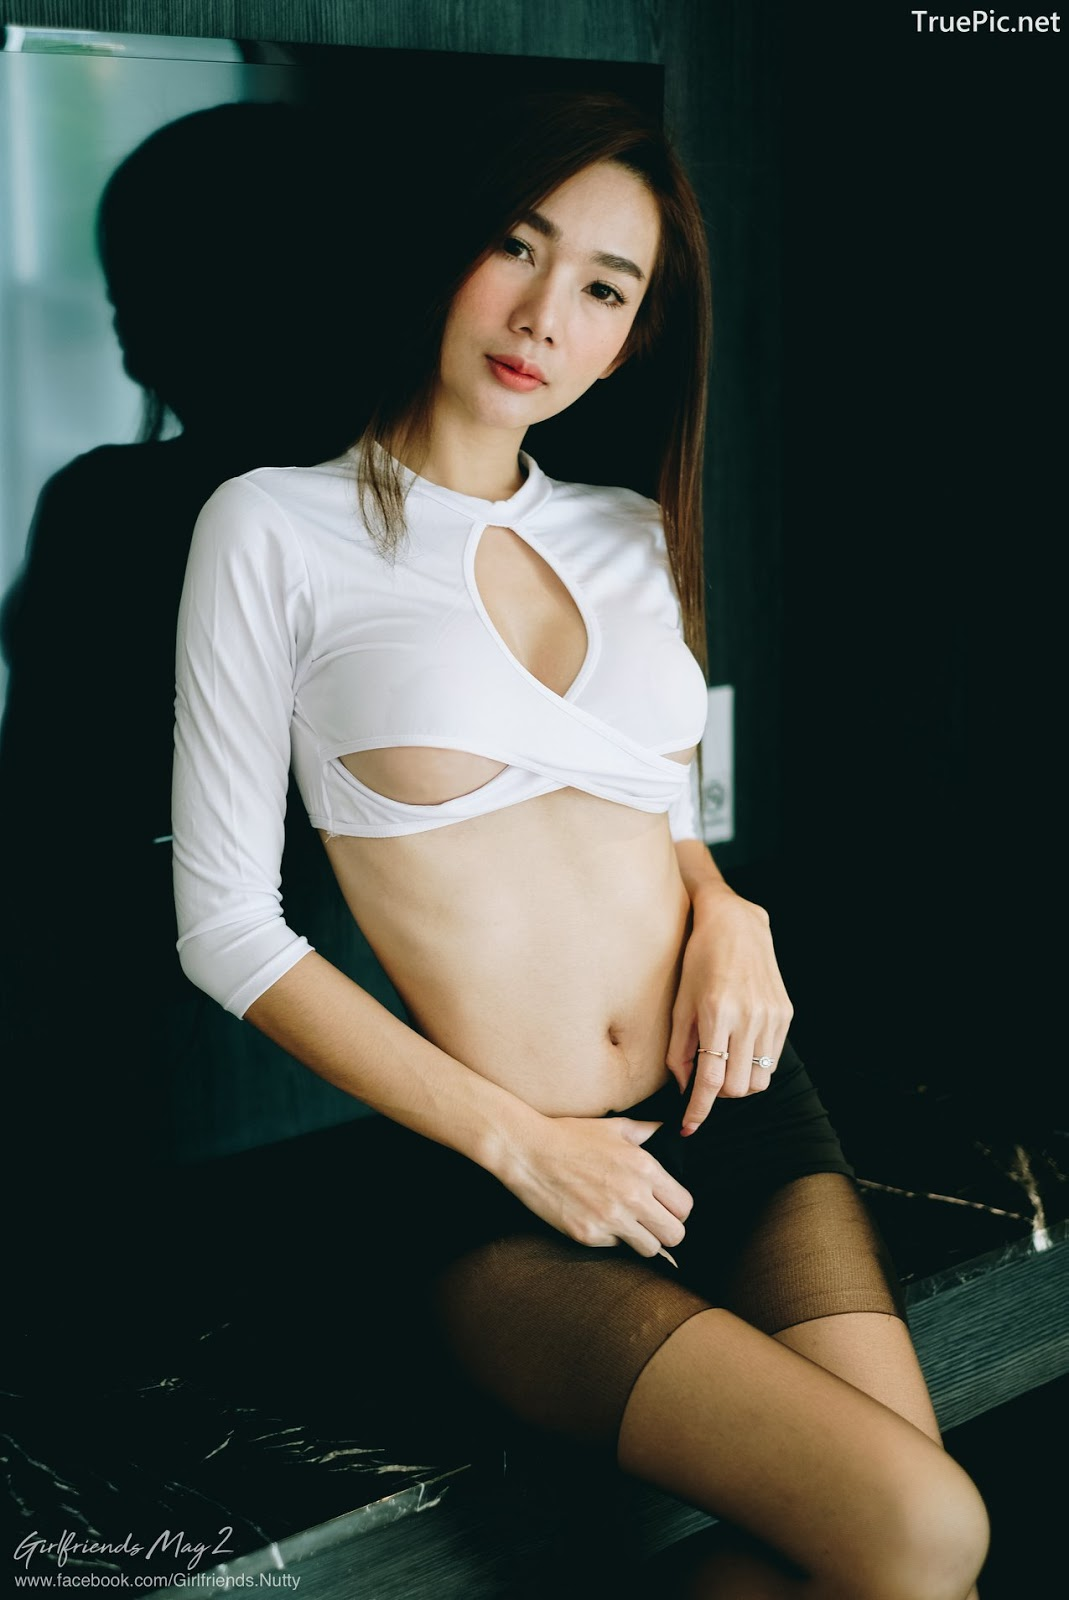 Image Thailand Model - Tadsanapon Kampan - WFH (Work from Hotel) - TruePic.net - Picture-9